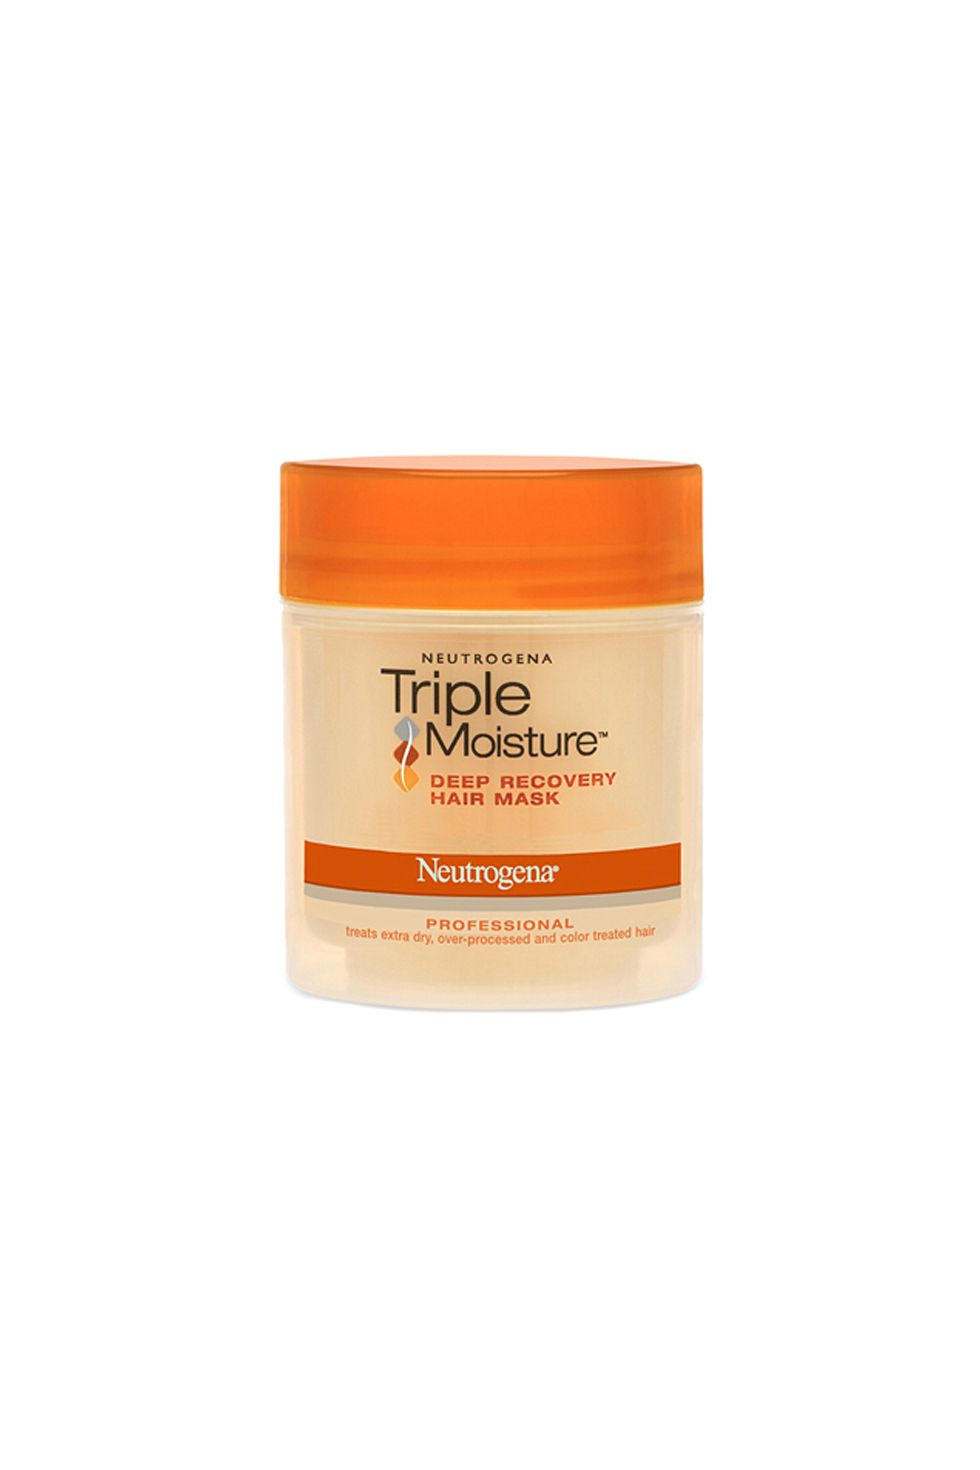 "<p>This mask leave your hair feeling silky and looking shiny and it's under $10. Yeah, we'll take one. </p><p><strong>Triple Moisture Deep Recovery Hair Mask, $7.49; <a href=""http://www.neutrogena.com/product/triple+moisture+deep+recovery+hair+mask.do"">neutrogena.com</a>. </strong></p>"